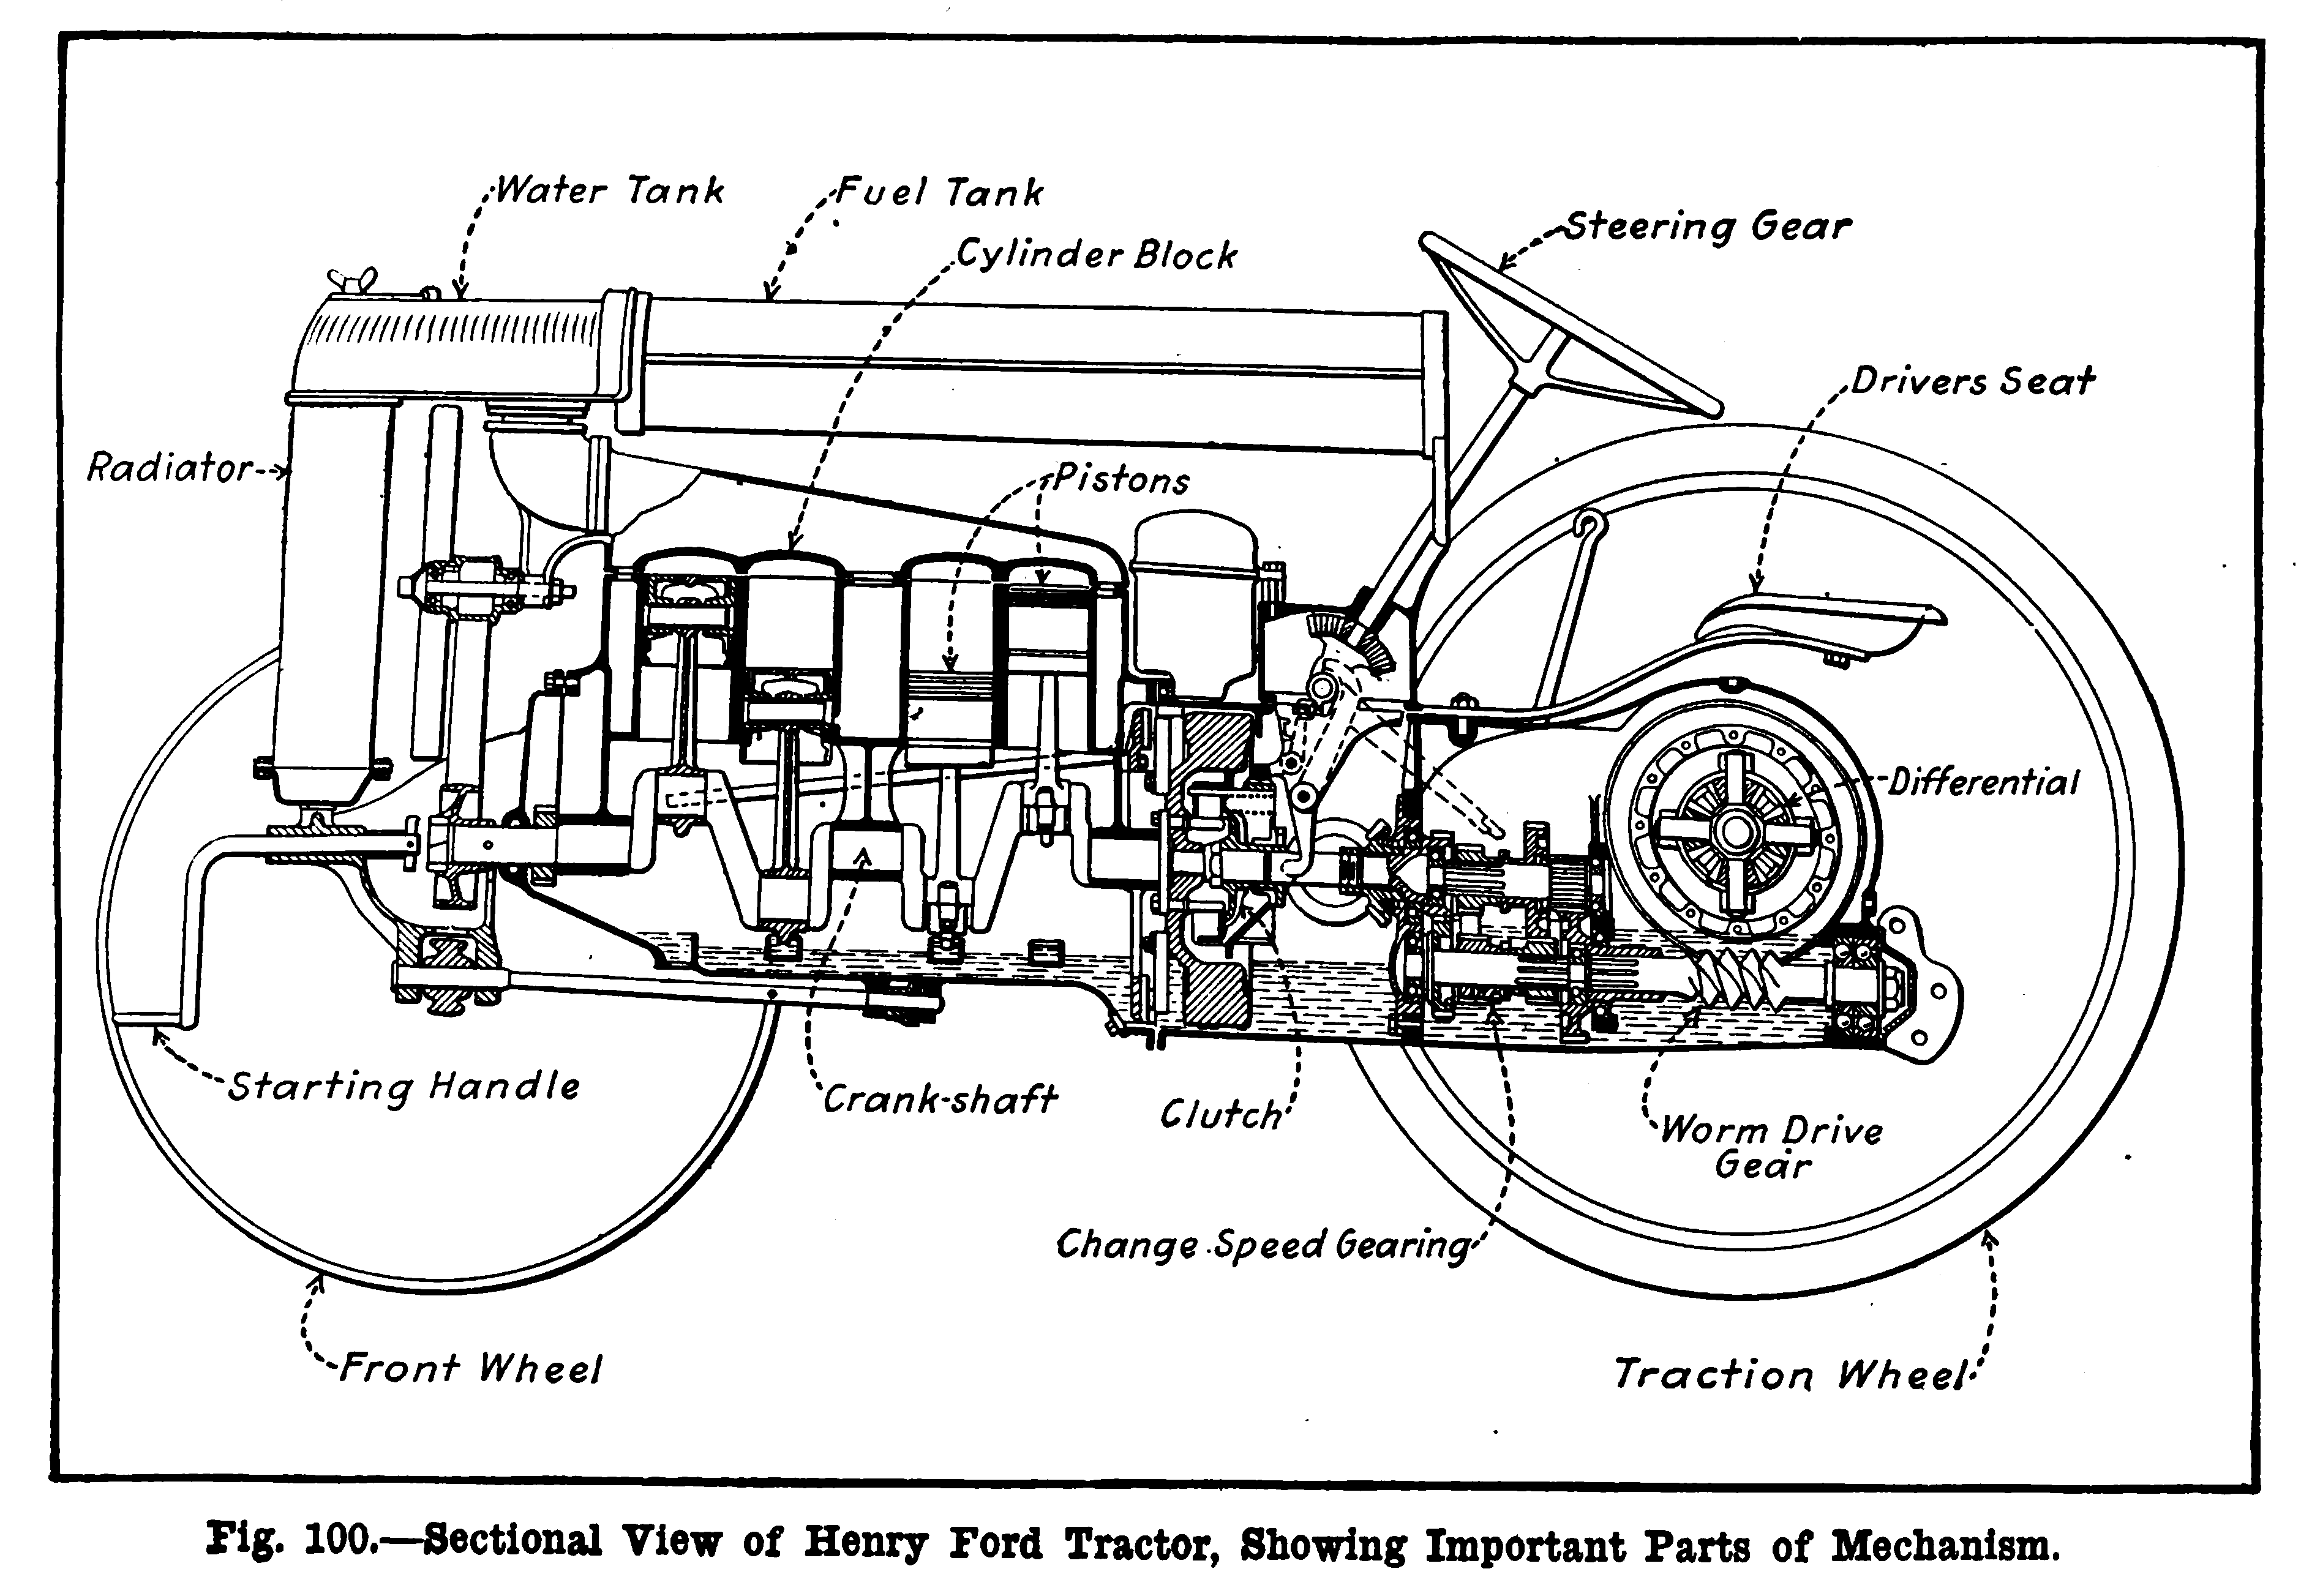 640 Ford Tractor Steering Diagram Diy Enthusiasts Wiring Diagrams \u2022  Ford Model 640 Ford 640 Tractor Schematic